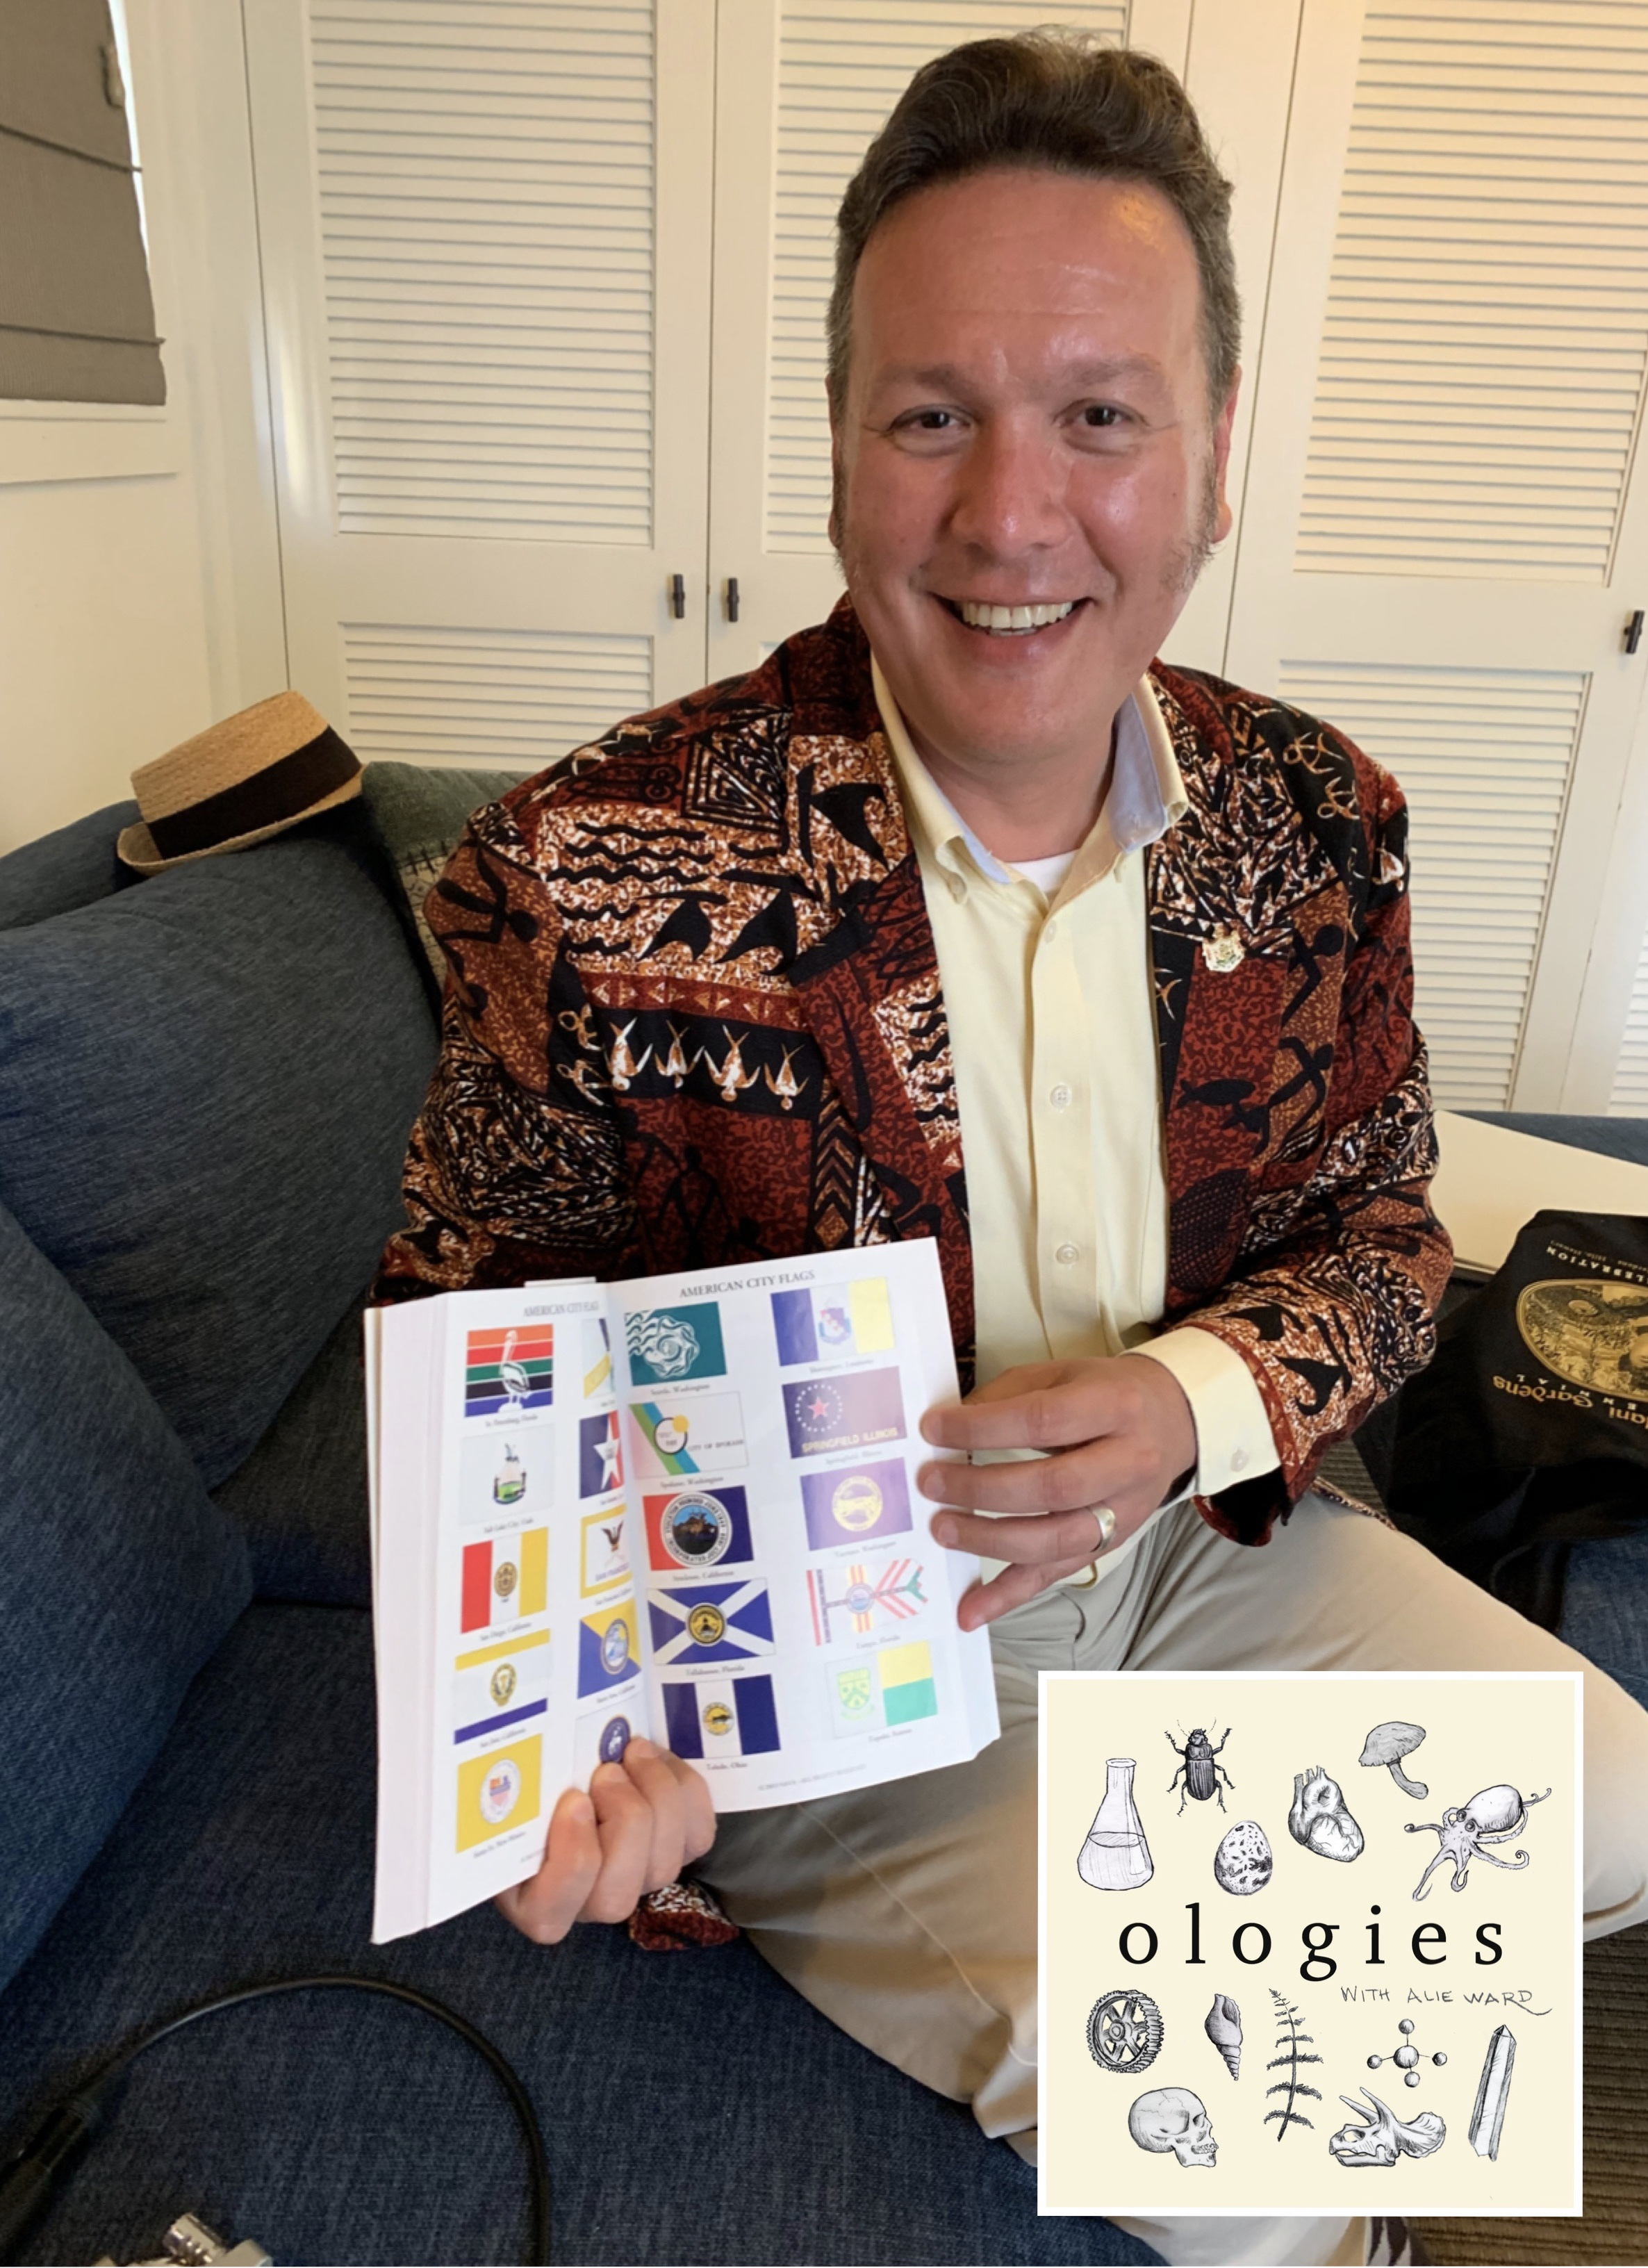 Sharp-dressed Honolulu vexillologist E. Tory Laitila brought along a book on flags and flag codes.